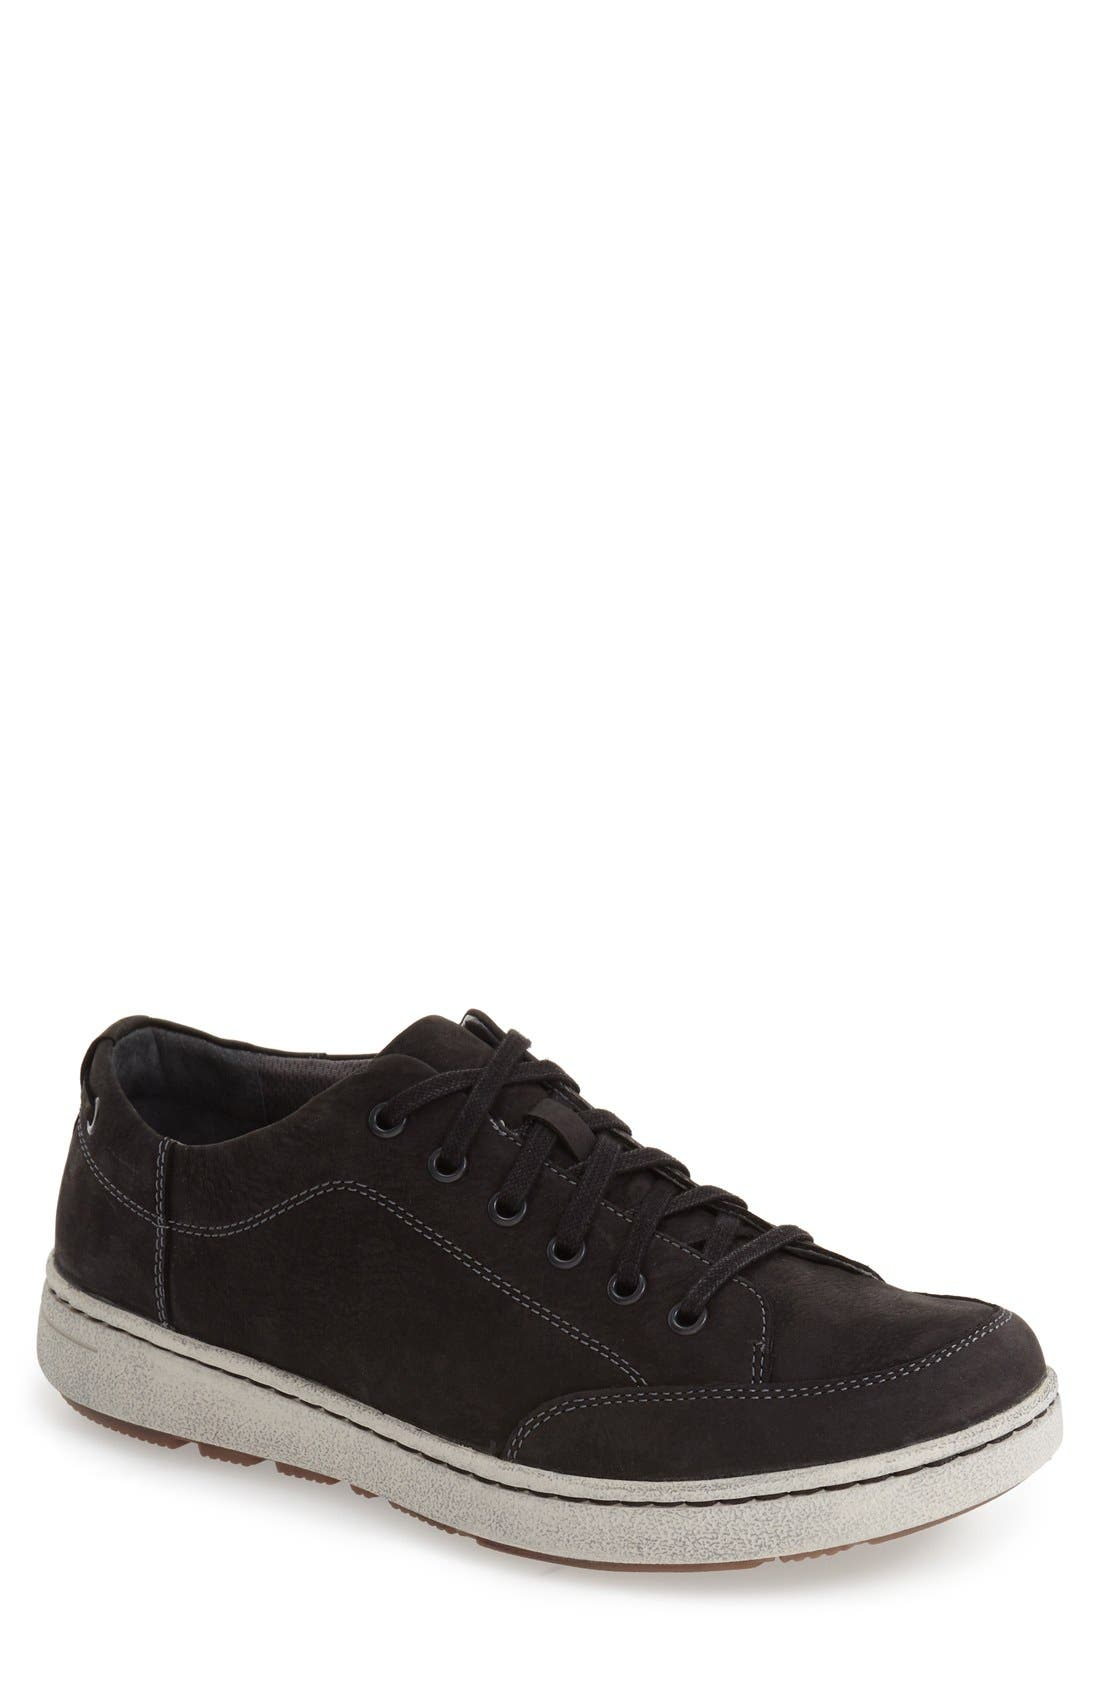 'Vaughn' Water-Resistant Sneaker,                         Main,                         color, Black Milled Nubuck Leather